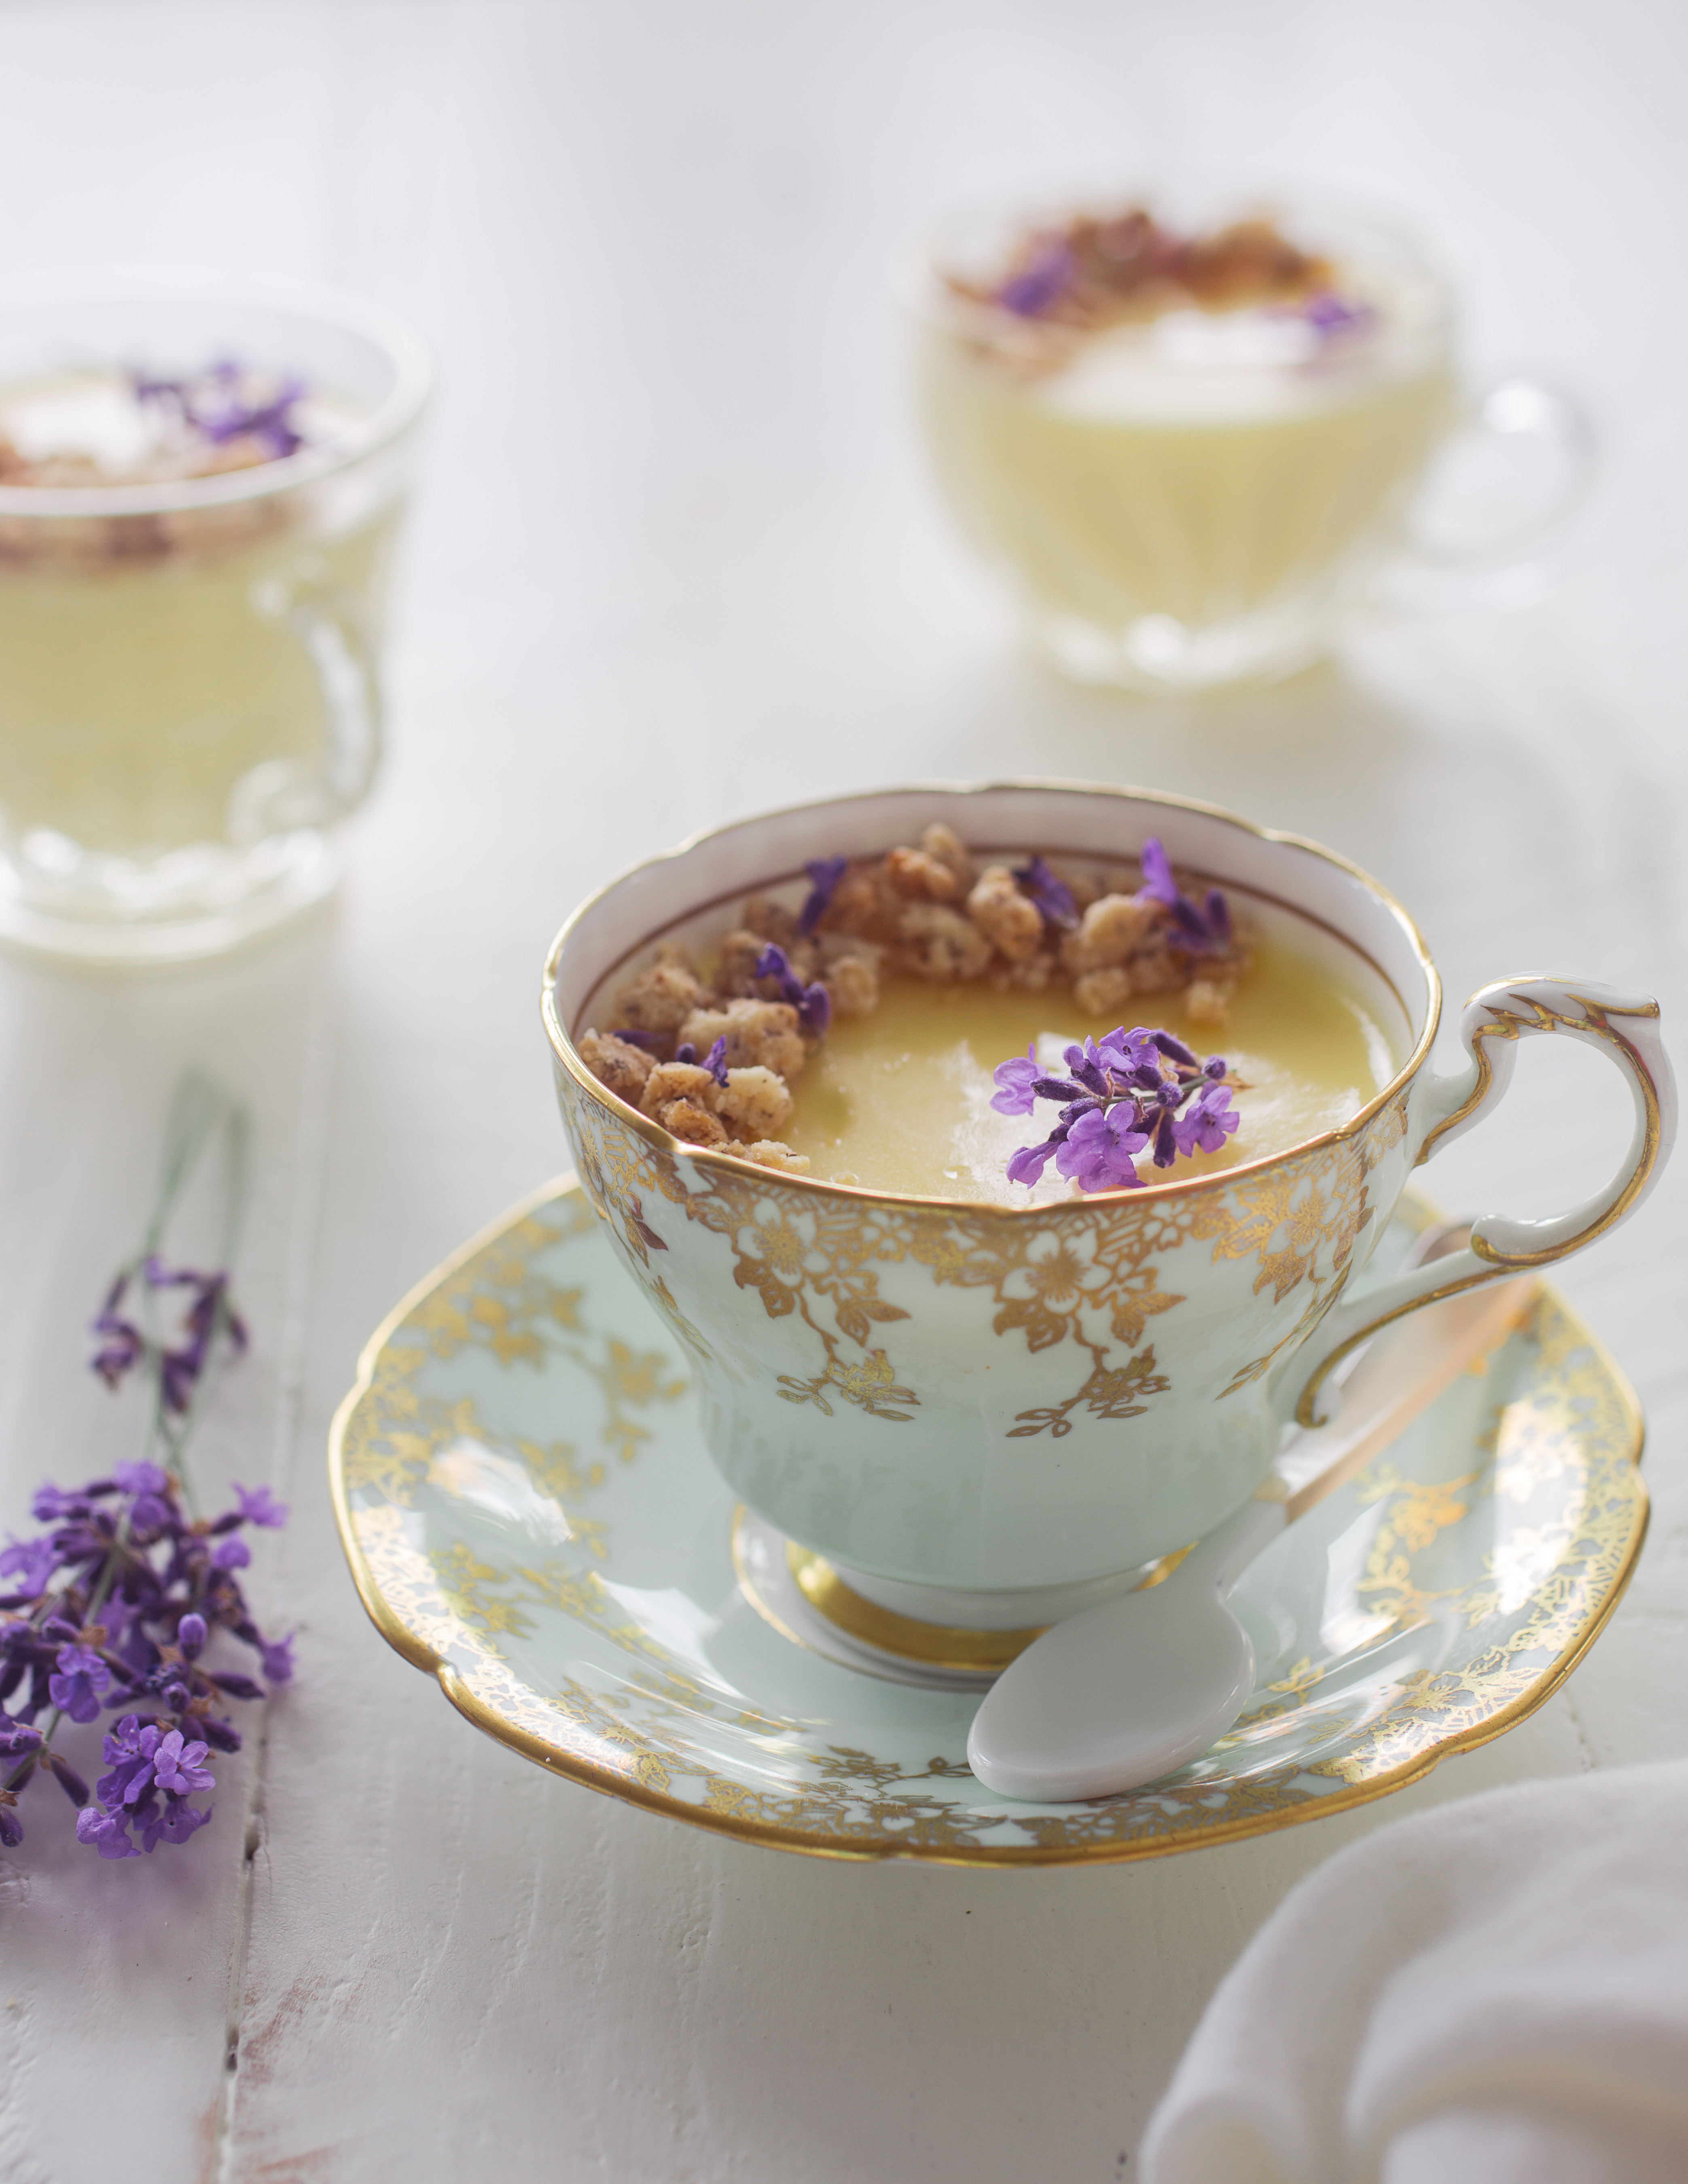 lavender-recipes-paola-thomas-food-photography-4